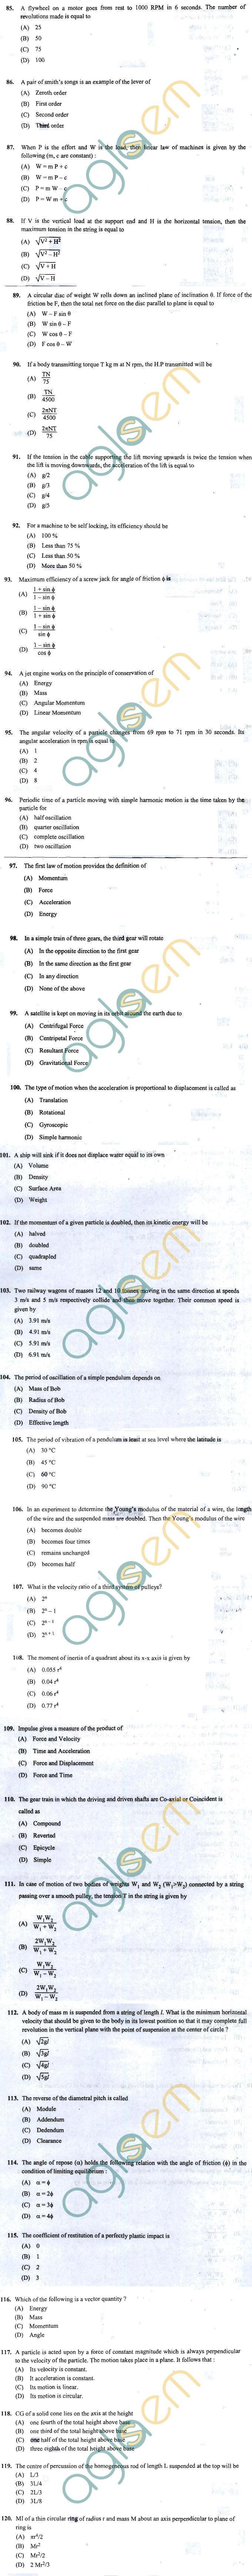 OJEE 2013 Question Paper for LE TECH